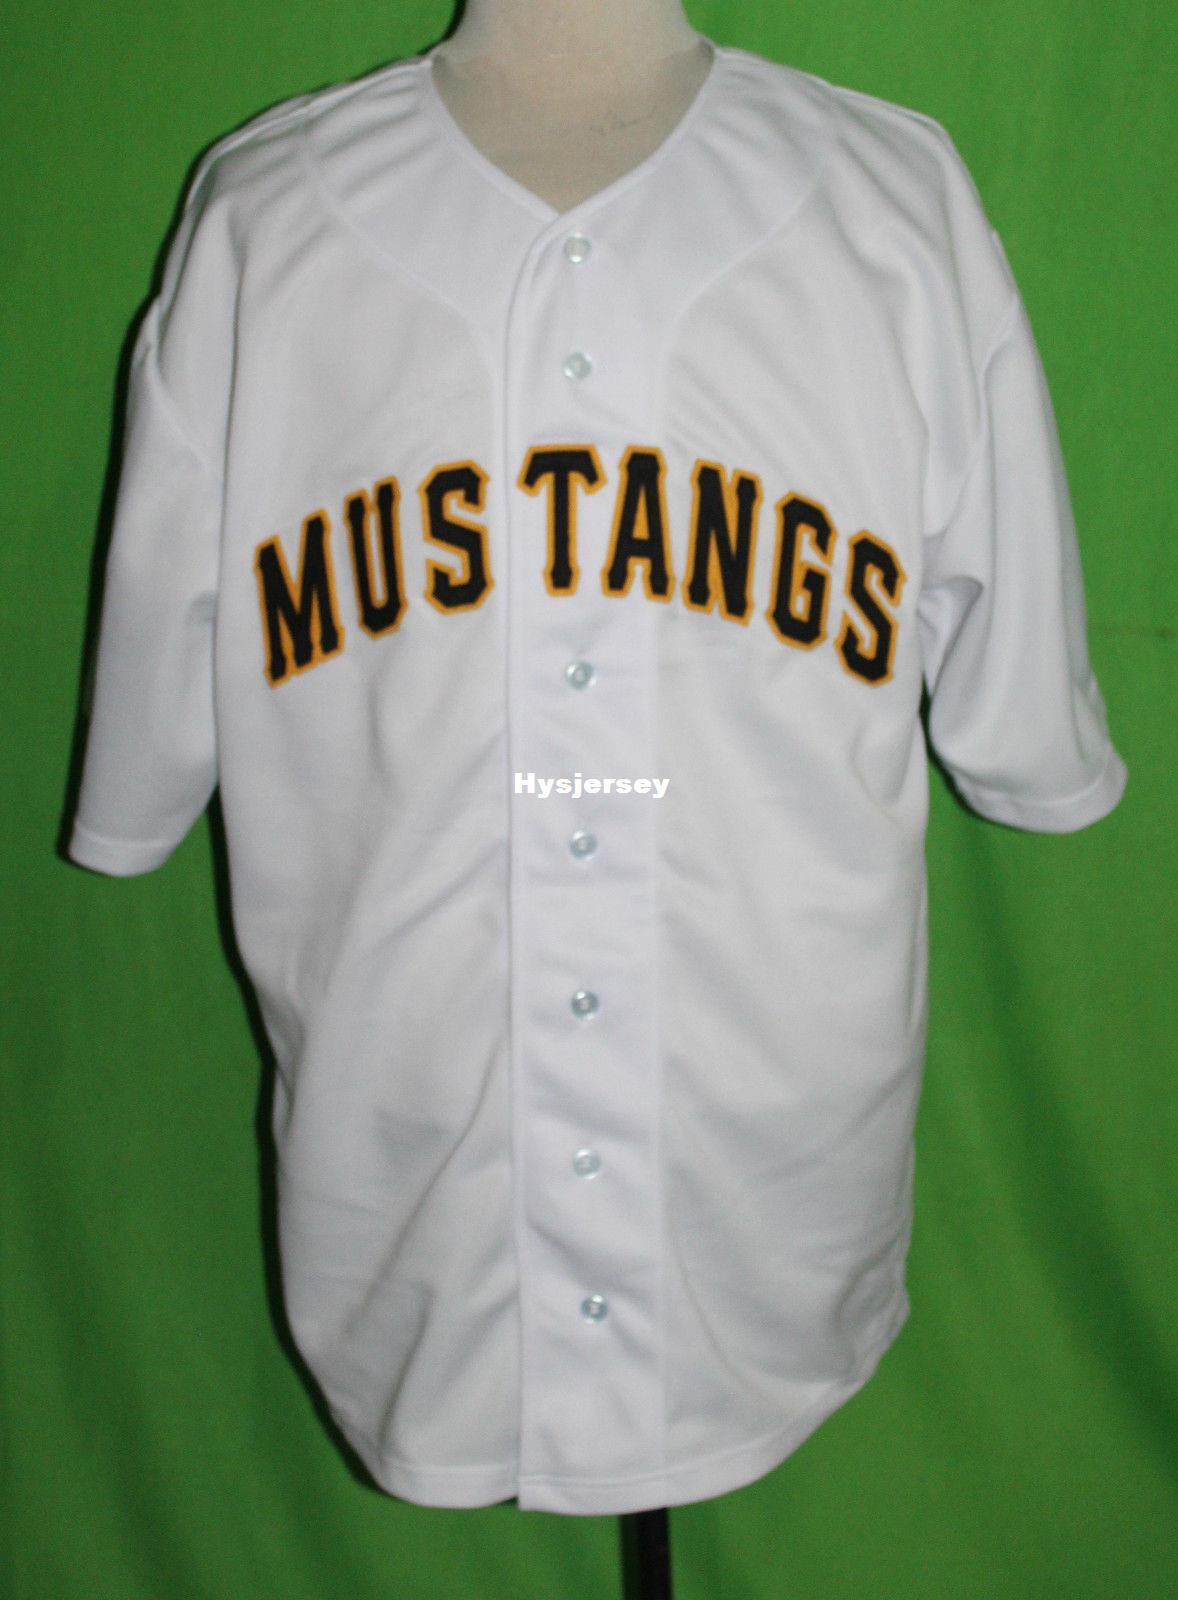 competitive price 84684 cc46c Cheap Retro BILLINGS MUSTANGS #27 1954 Home BASEBALL JERSEY Or Custom any  number any Mens Vintage jerseys XS - 5XL